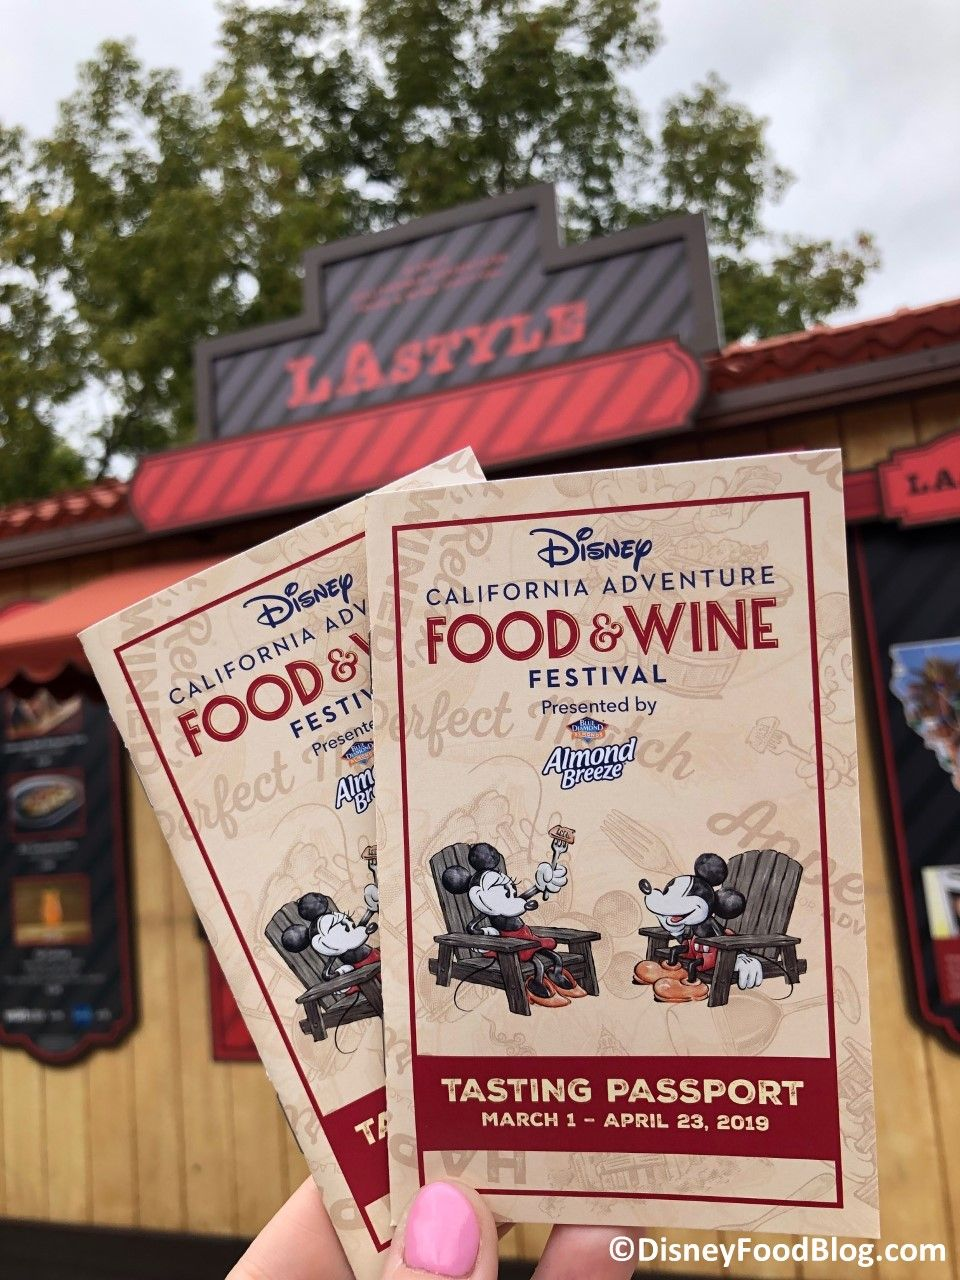 Best Of The Fest Must Eats At The 2019 Disney California Adventure Food And Wine Festival The Disney Food Blog Wine Festival Disney Food Blog Wine Recipes